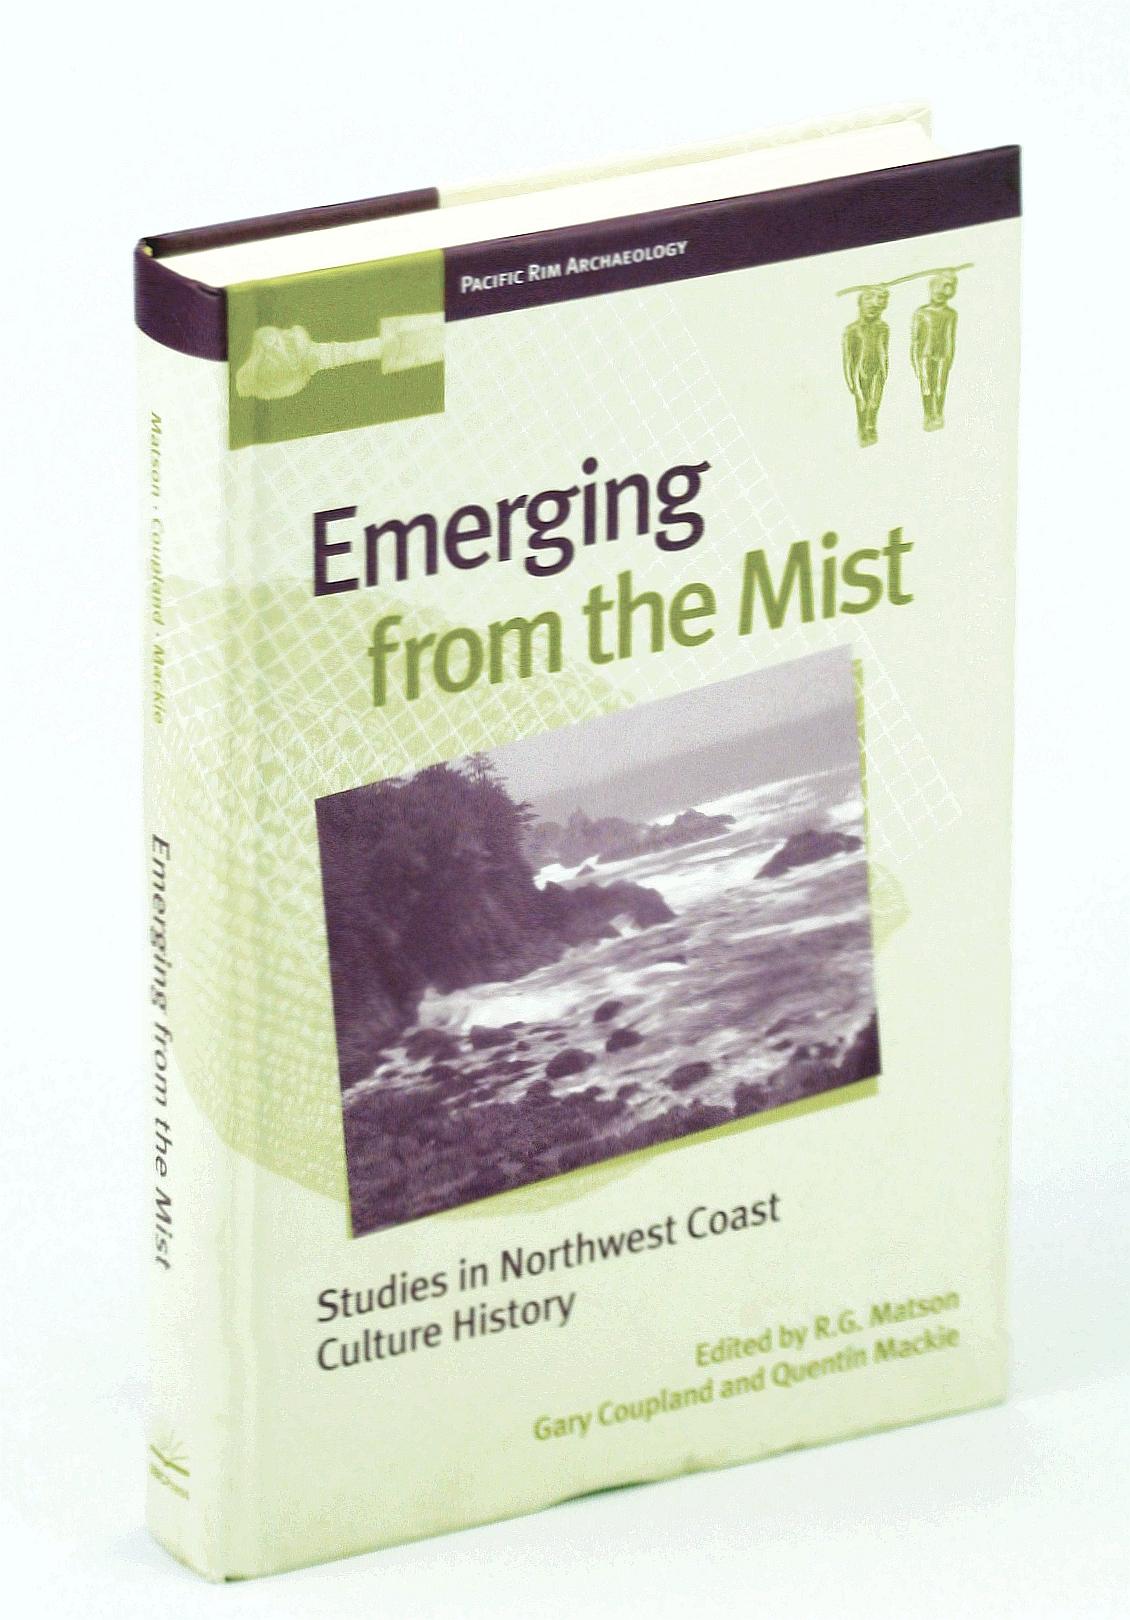 Image for Emerging from the Mist: Studies in Northwest Coast Culture History (Pacific Rim Archaeology,)